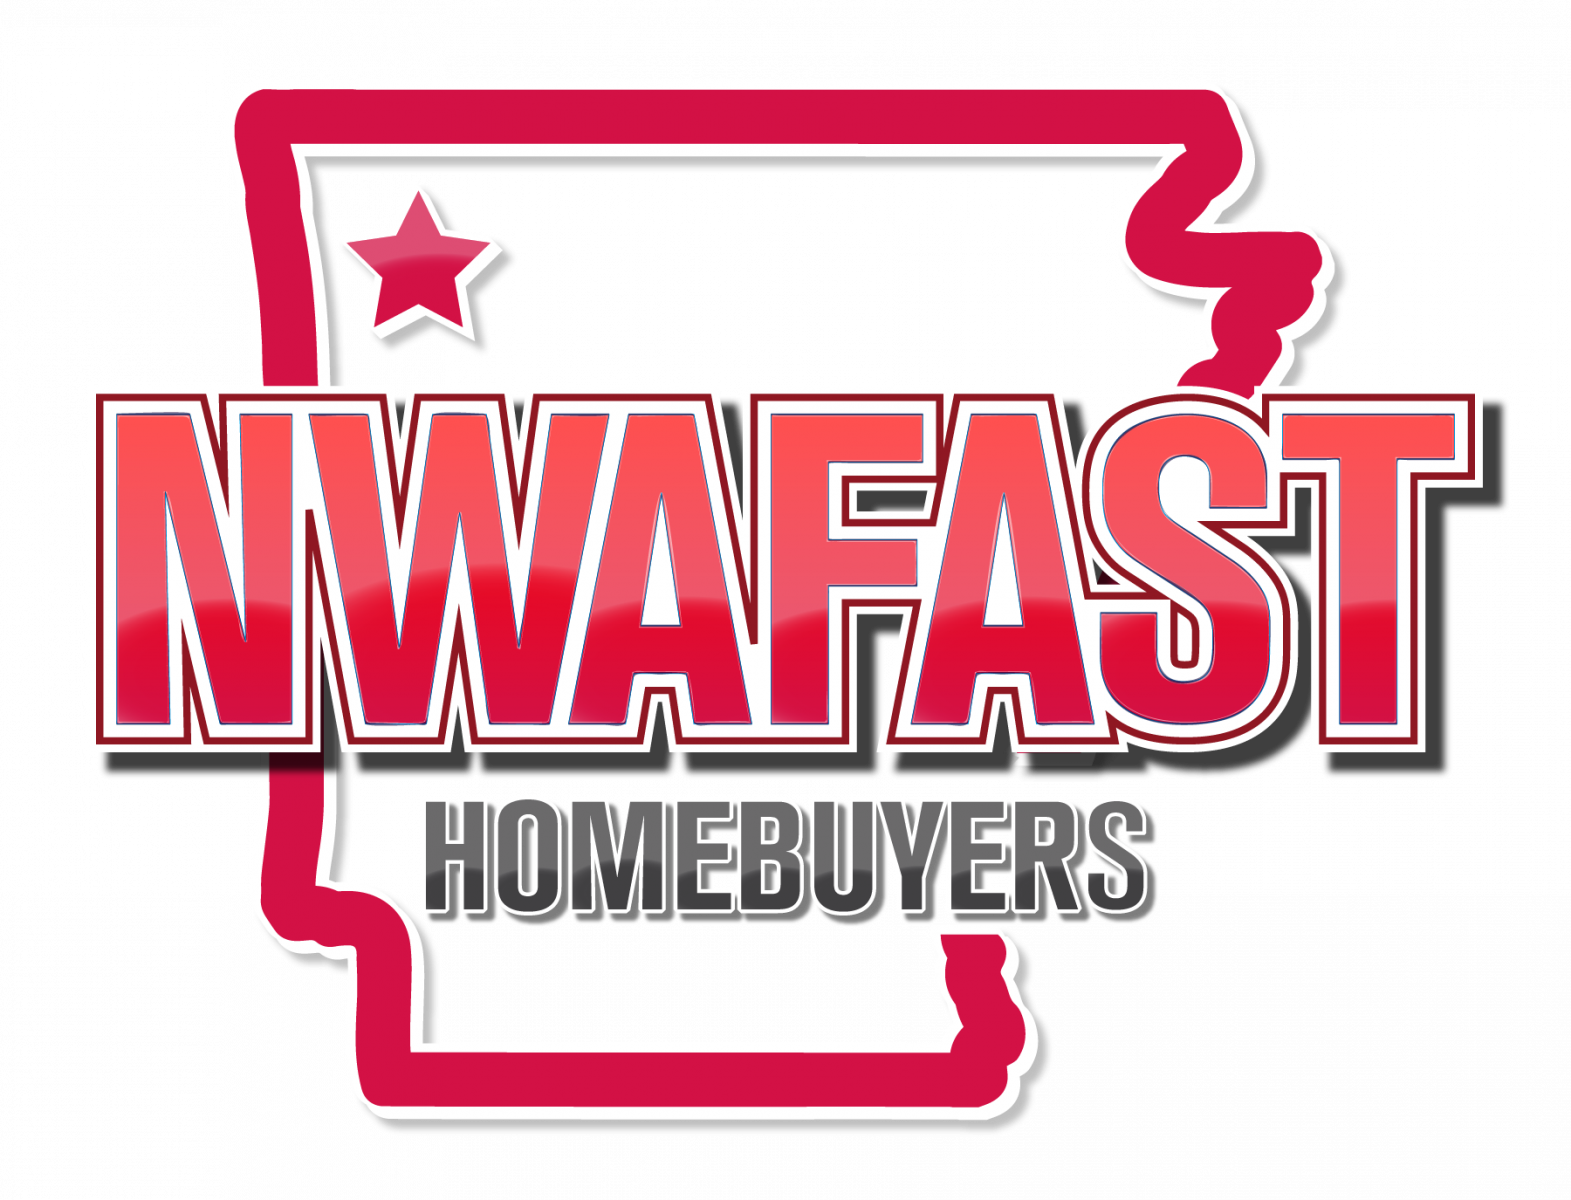 NWAfast Homebuyers logo